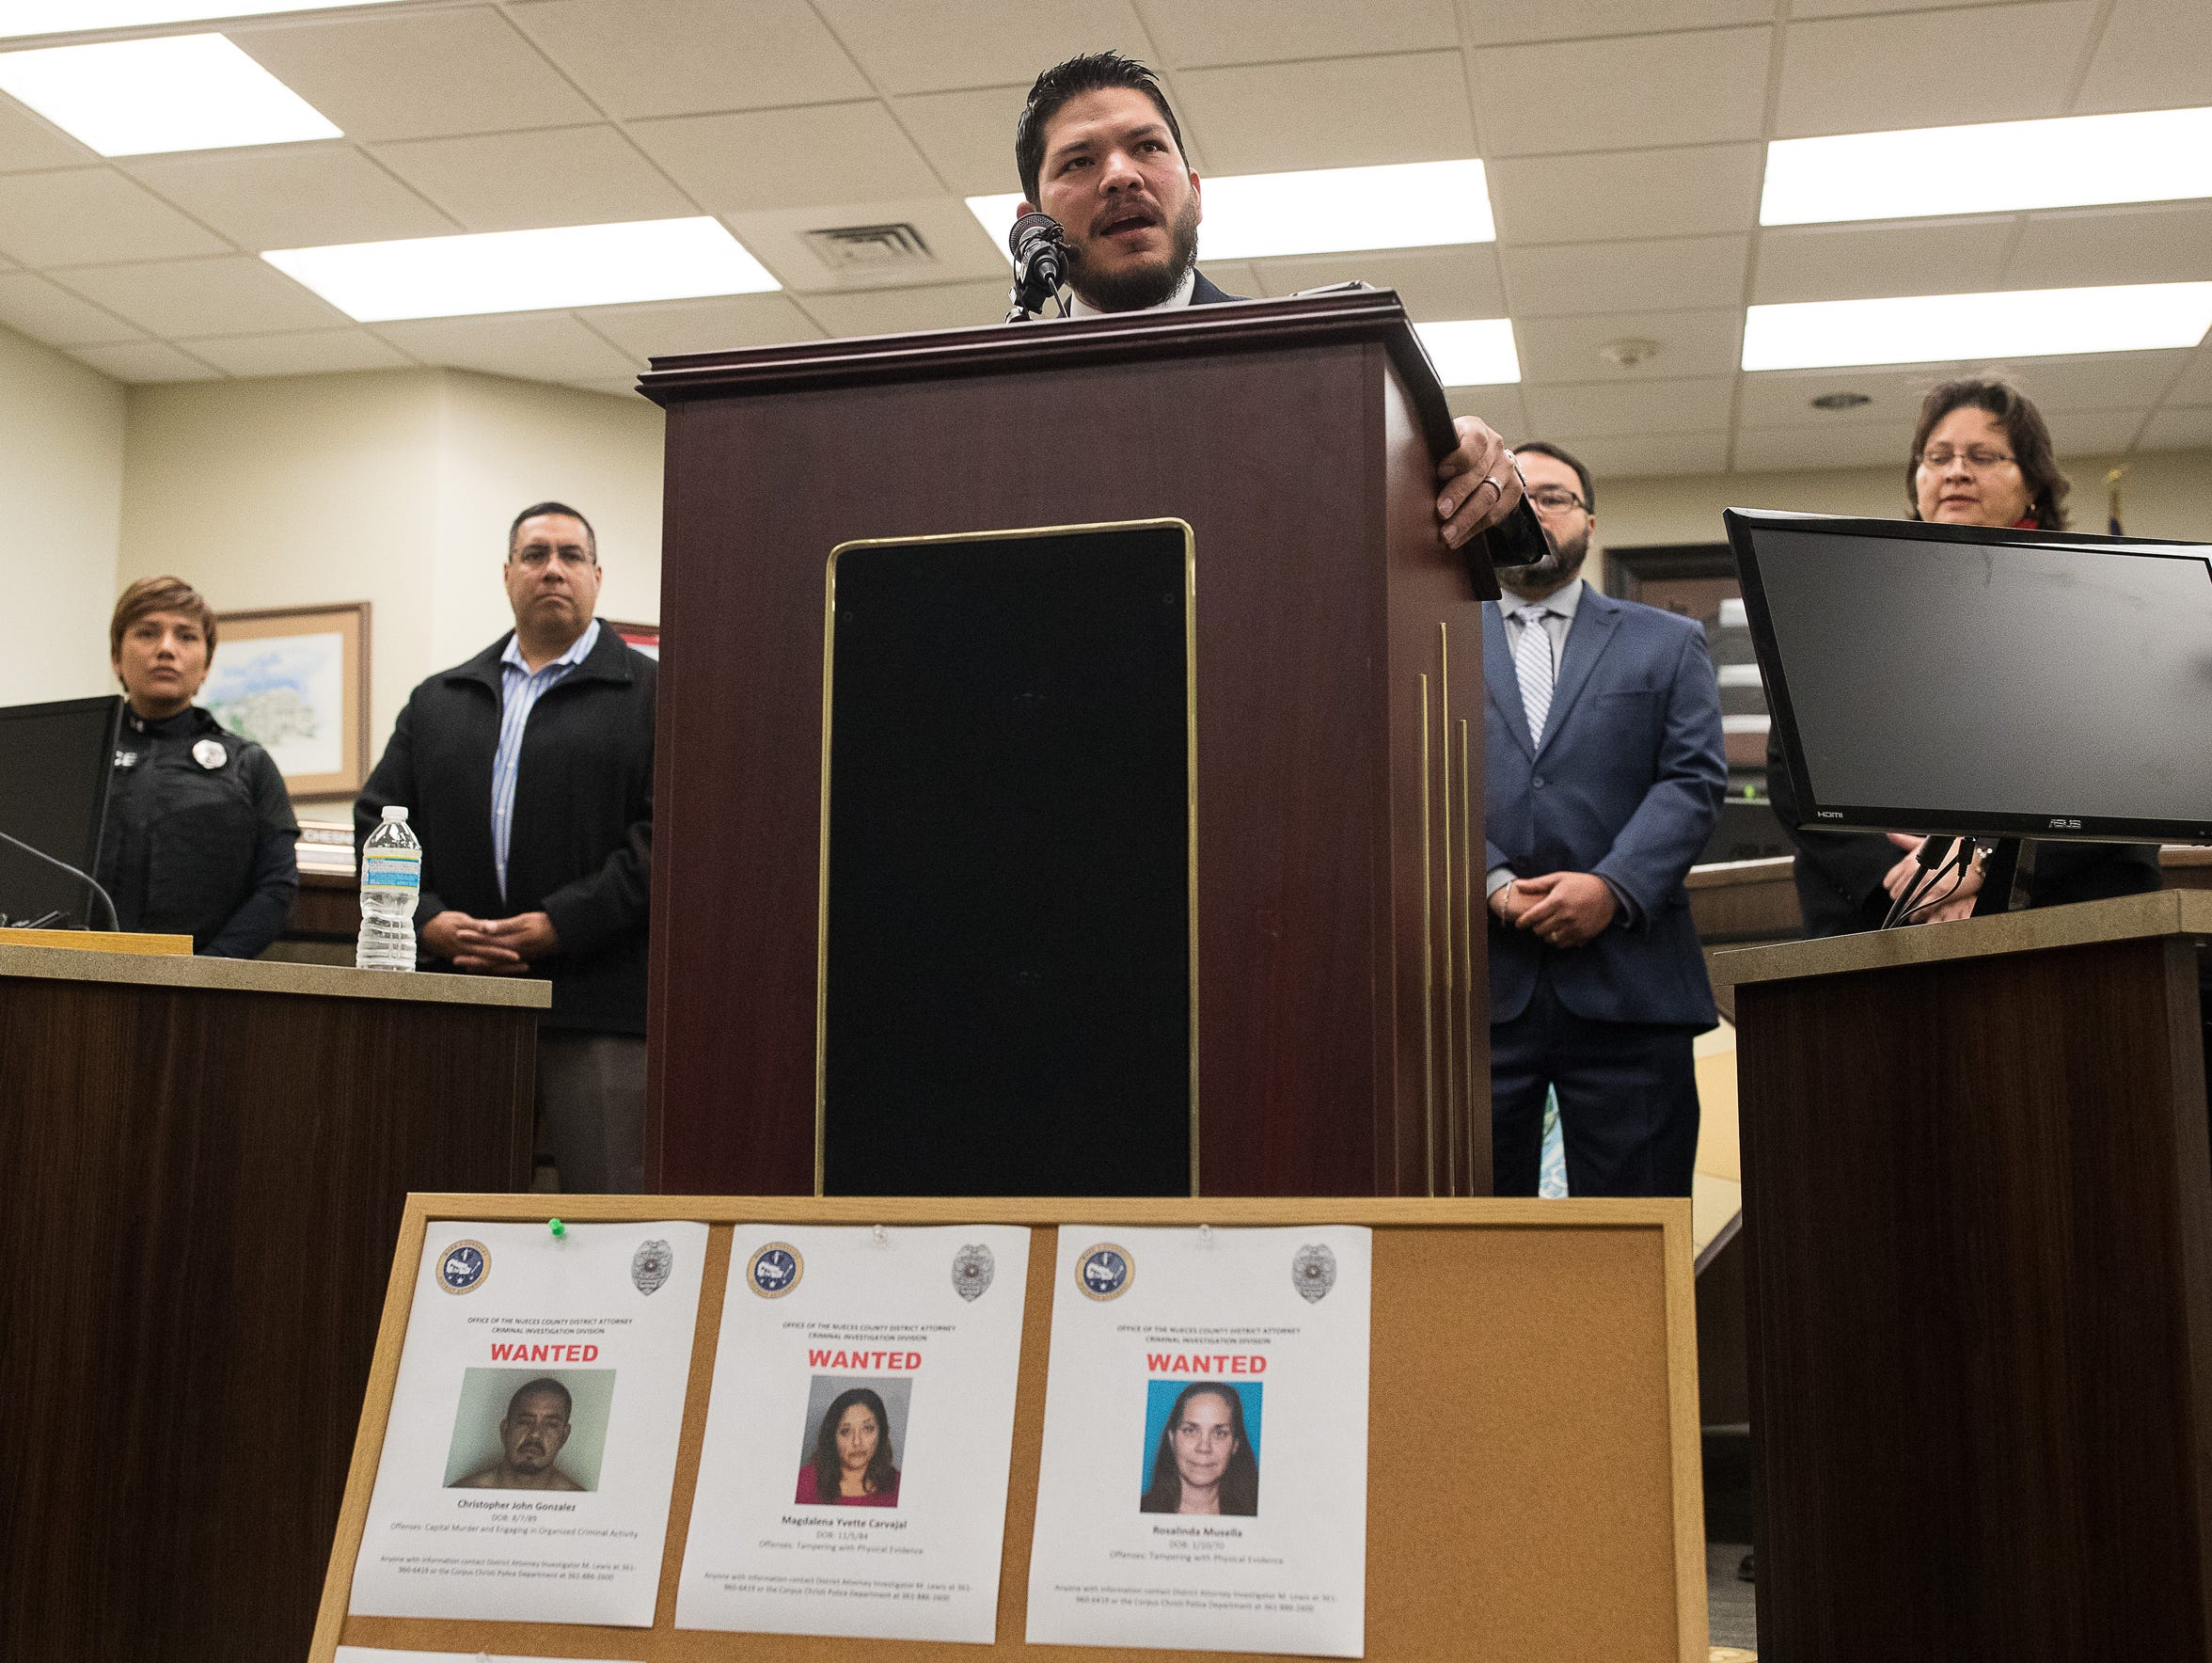 Nueces County District Attorney Mark Gonzalez announced